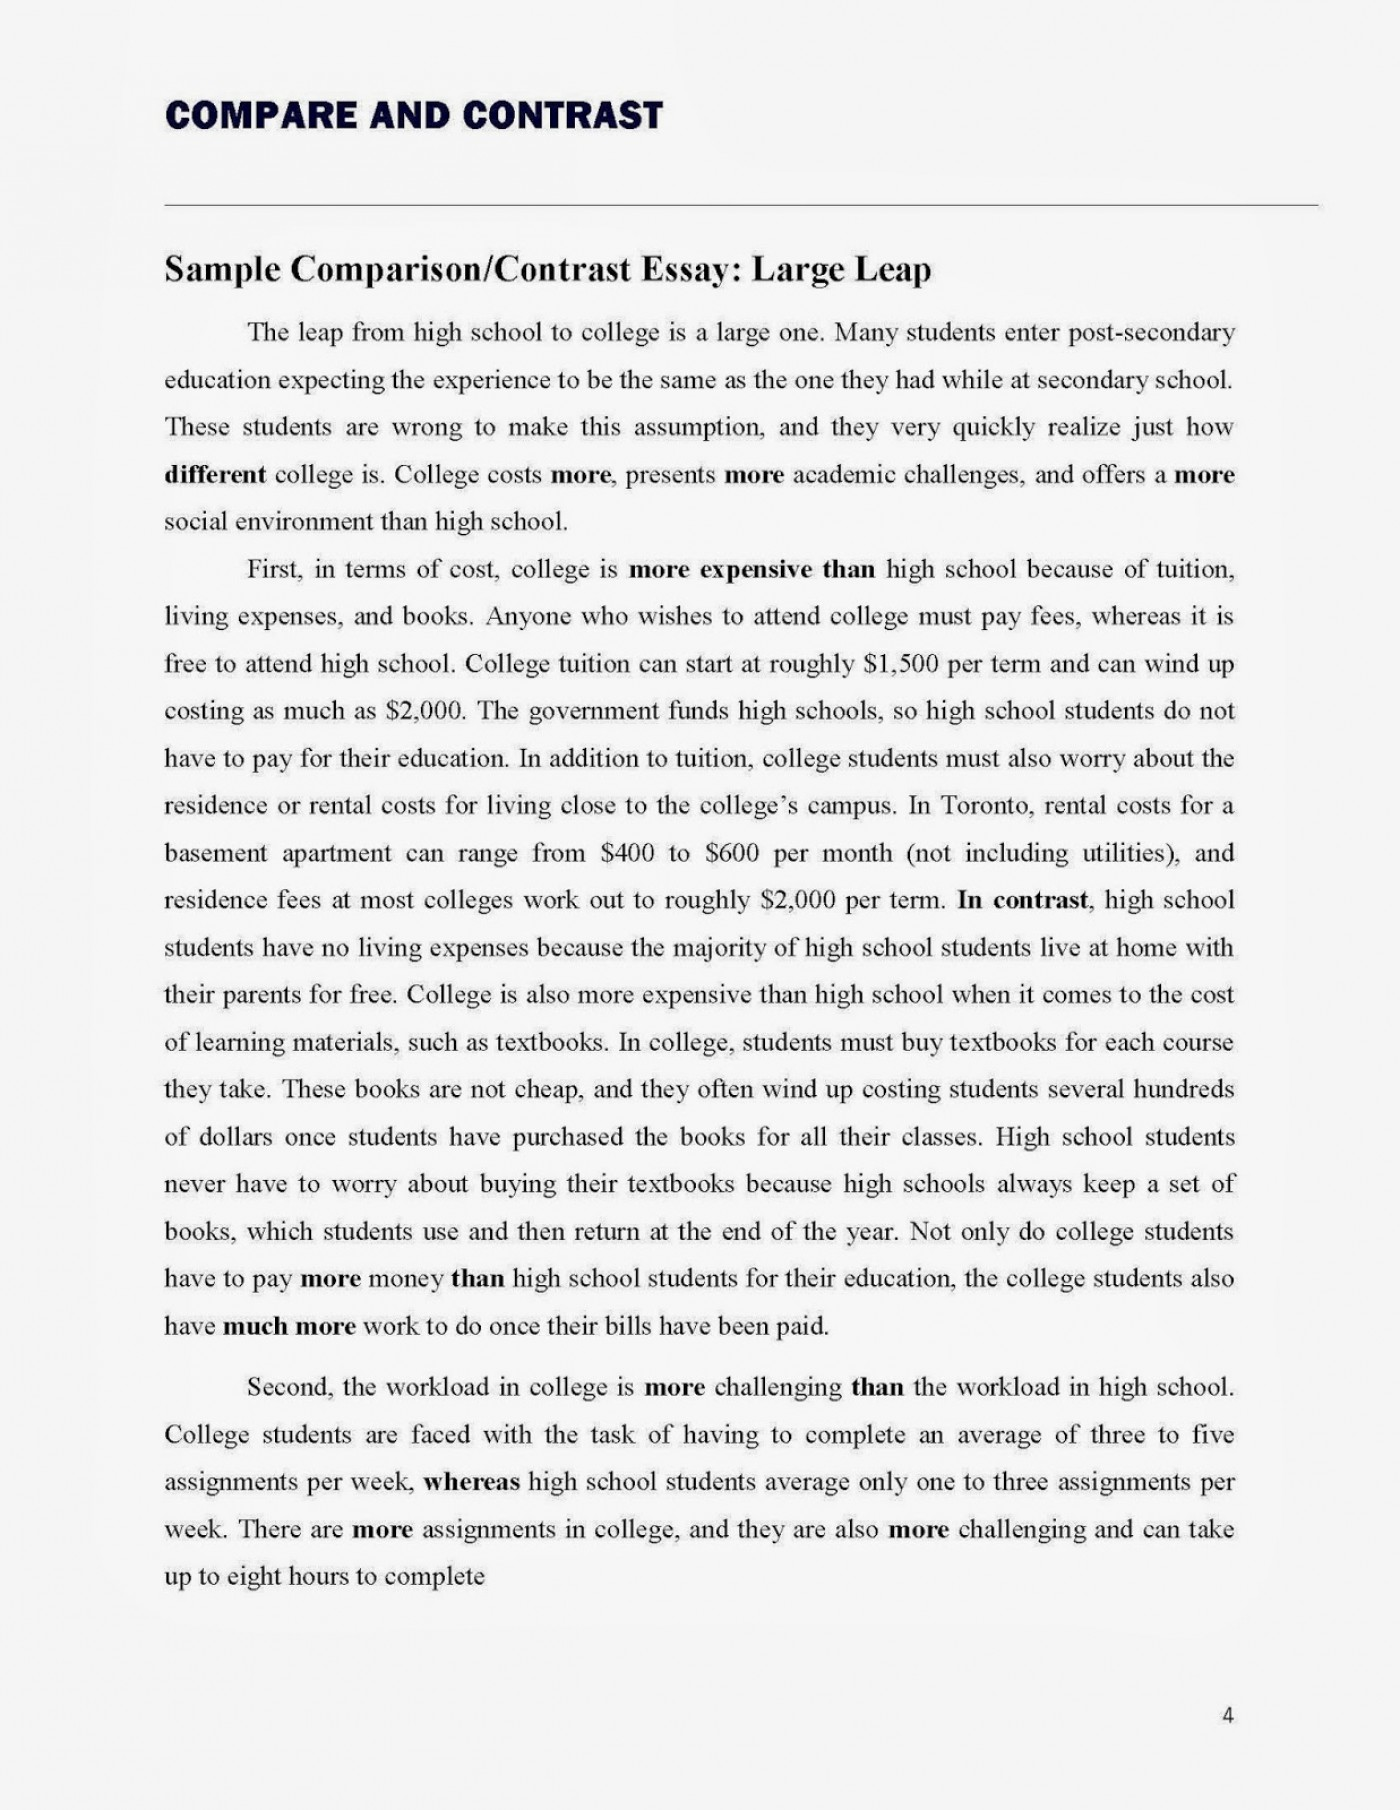 011 Compare And Contrast Essay Compareandcontrastessay Page 4h125 Frightening Topics For College Students Rubric 4th Grade Ideas 7th 1400